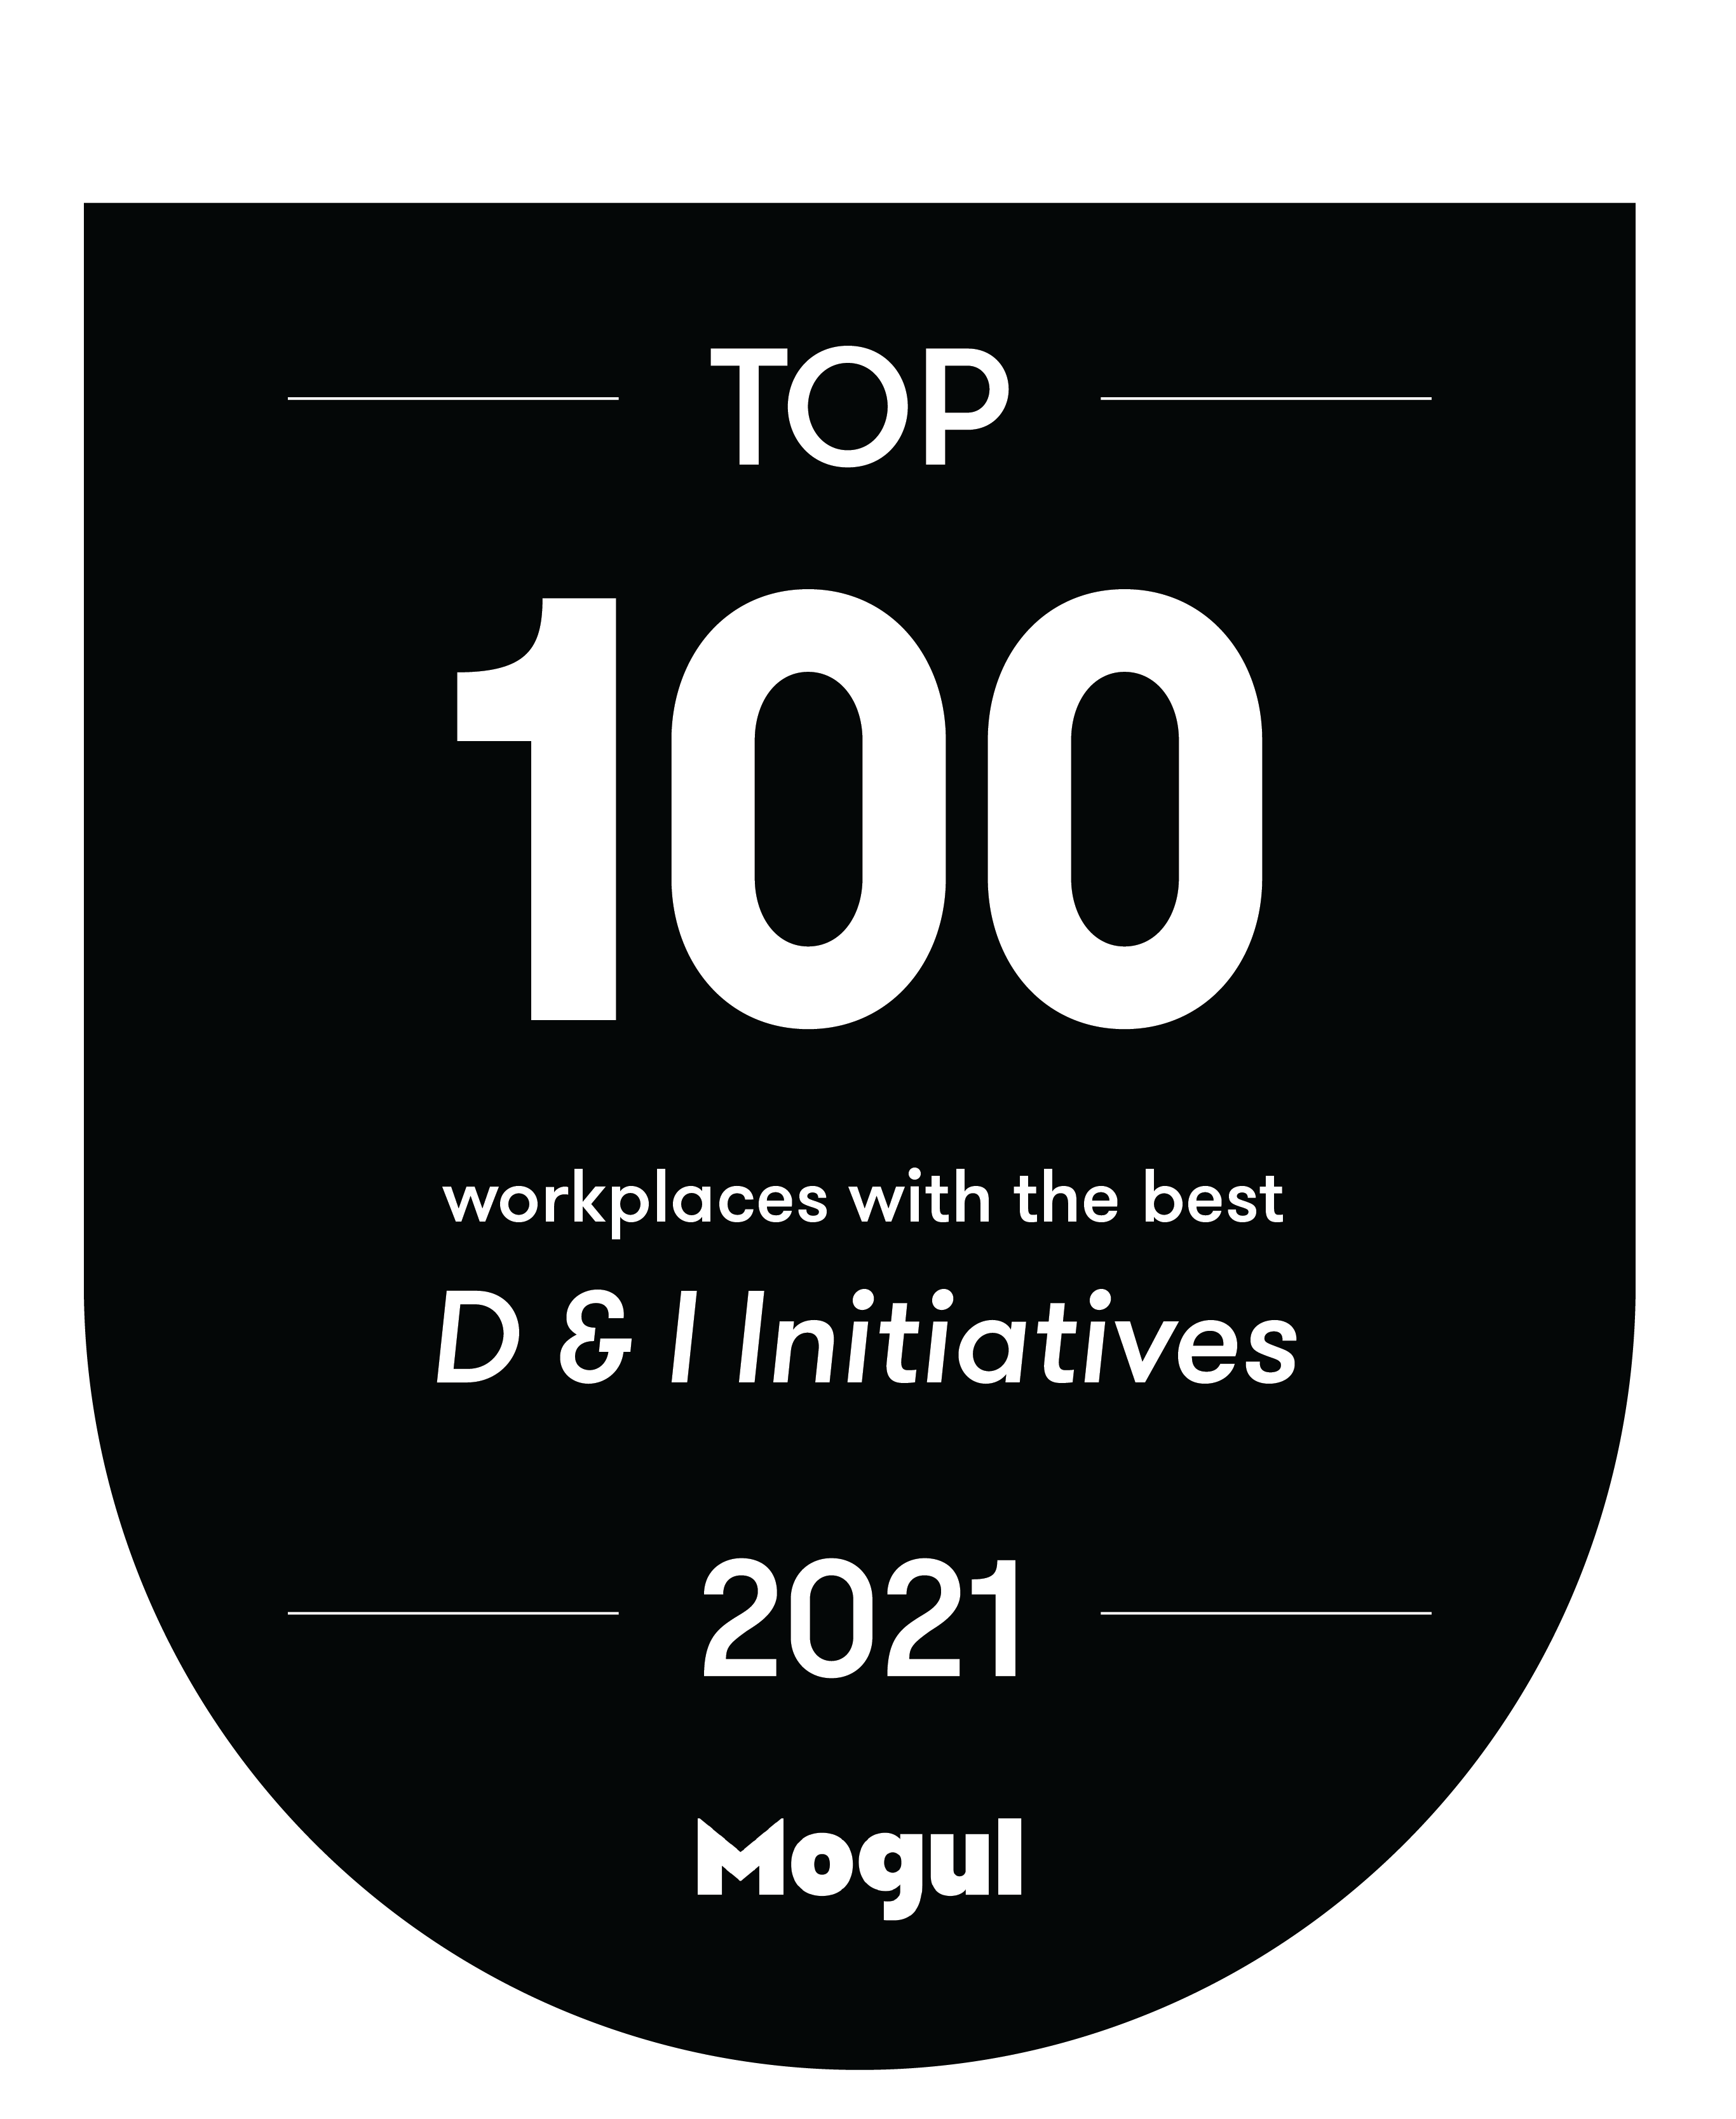 2021 Badge – Top 100 Workplaces with the Best D & I Initiatives